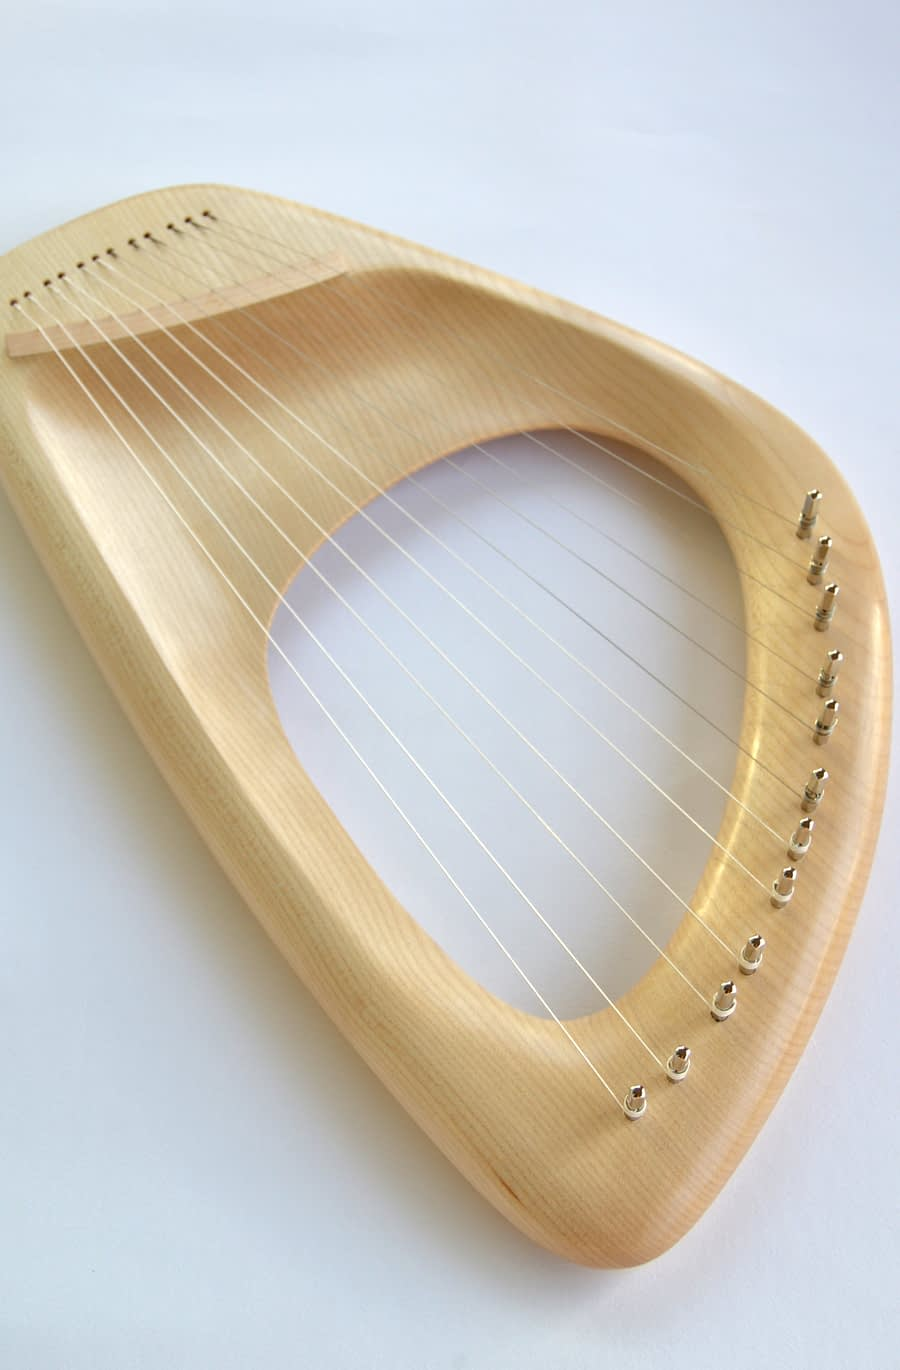 12 String Pentatonic Lyre, Maple Wood Musical Instrument